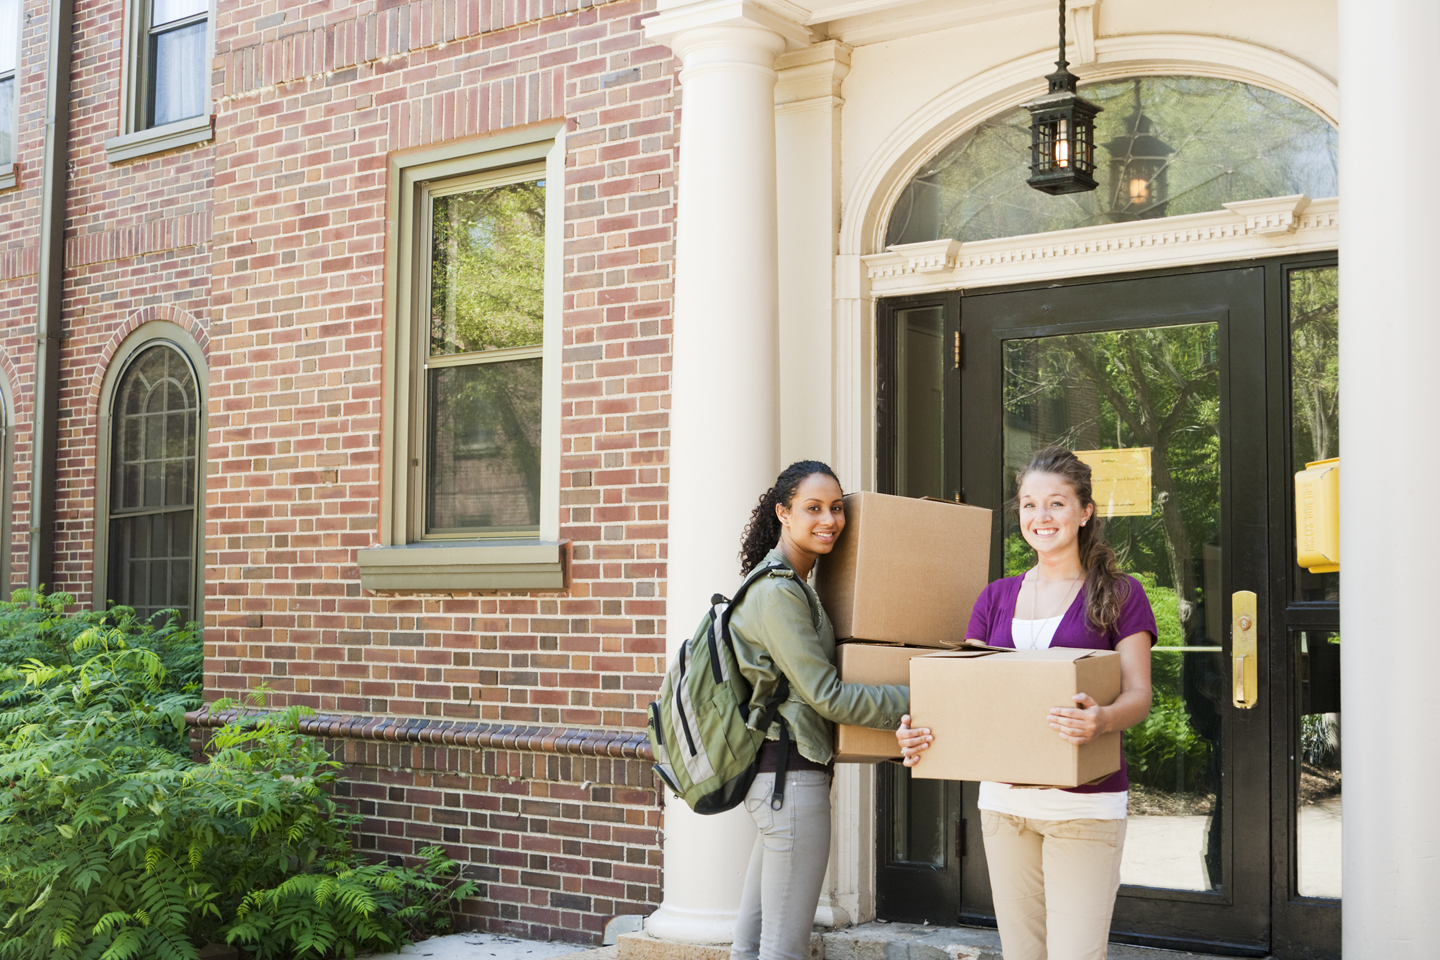 Back to School: Will Homeowners Insurance Protect Your Things